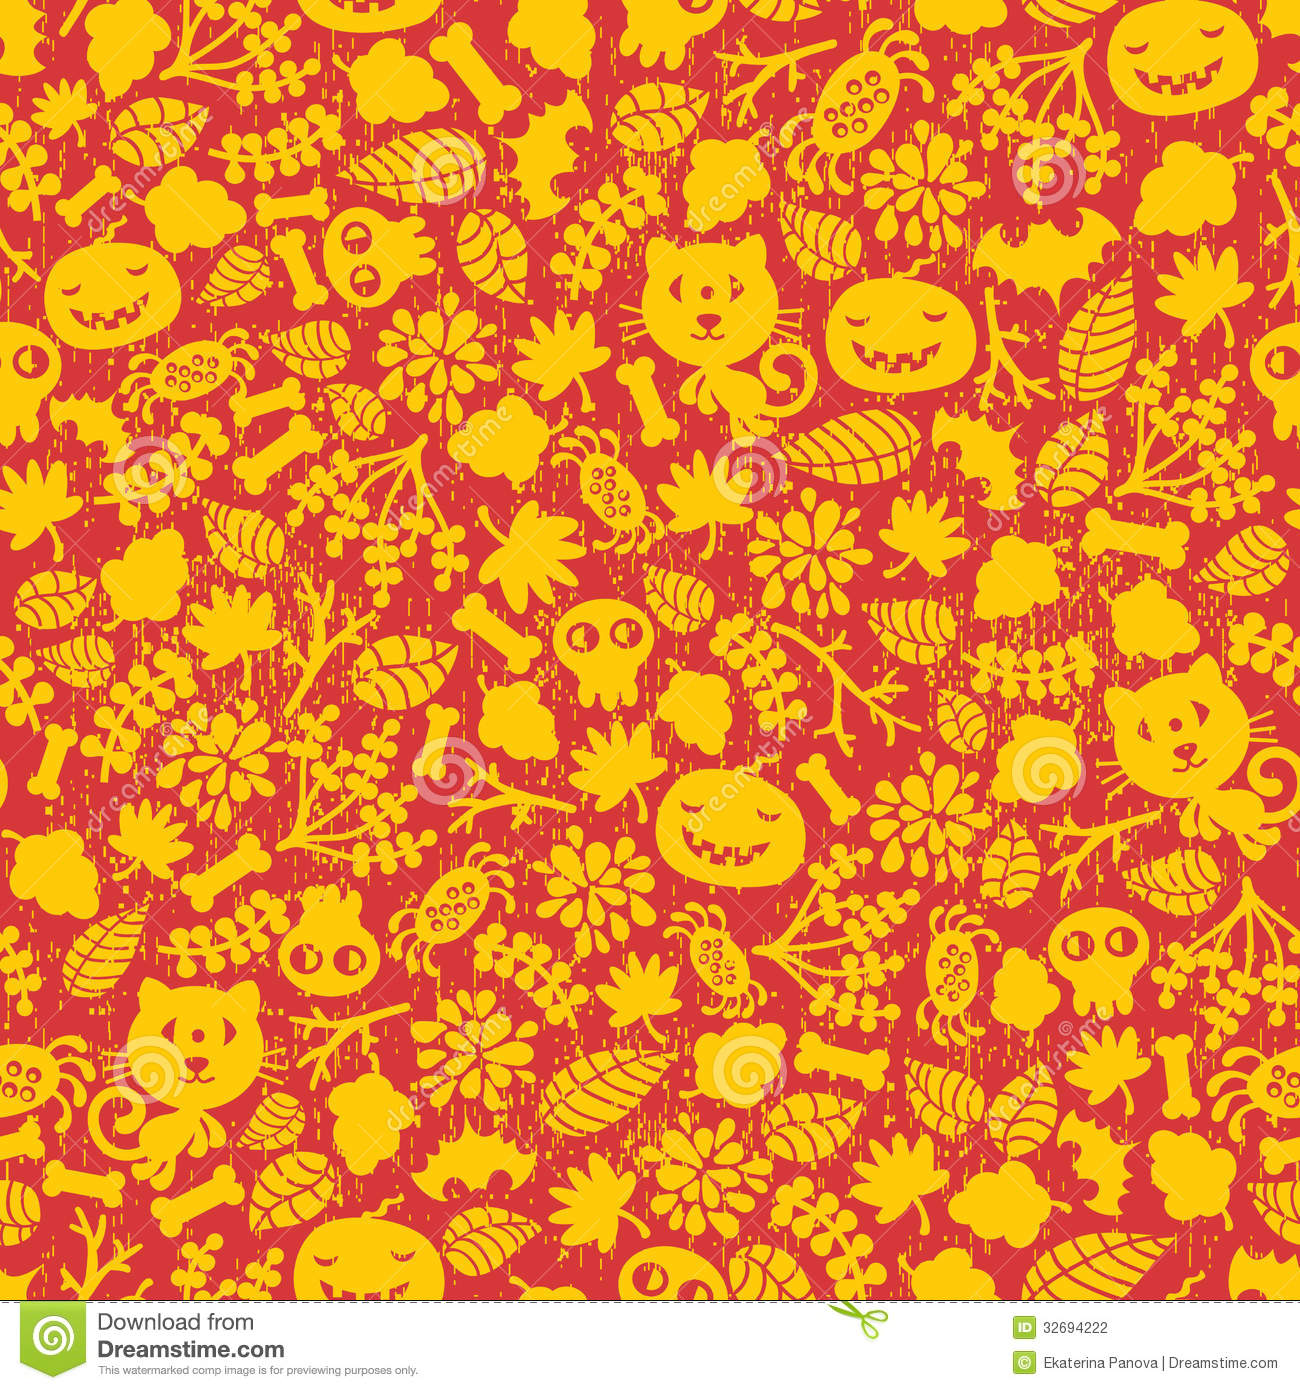 Fall Leaves Clip Art Wallpaper Seamless Halloween Background Stock Photography Image